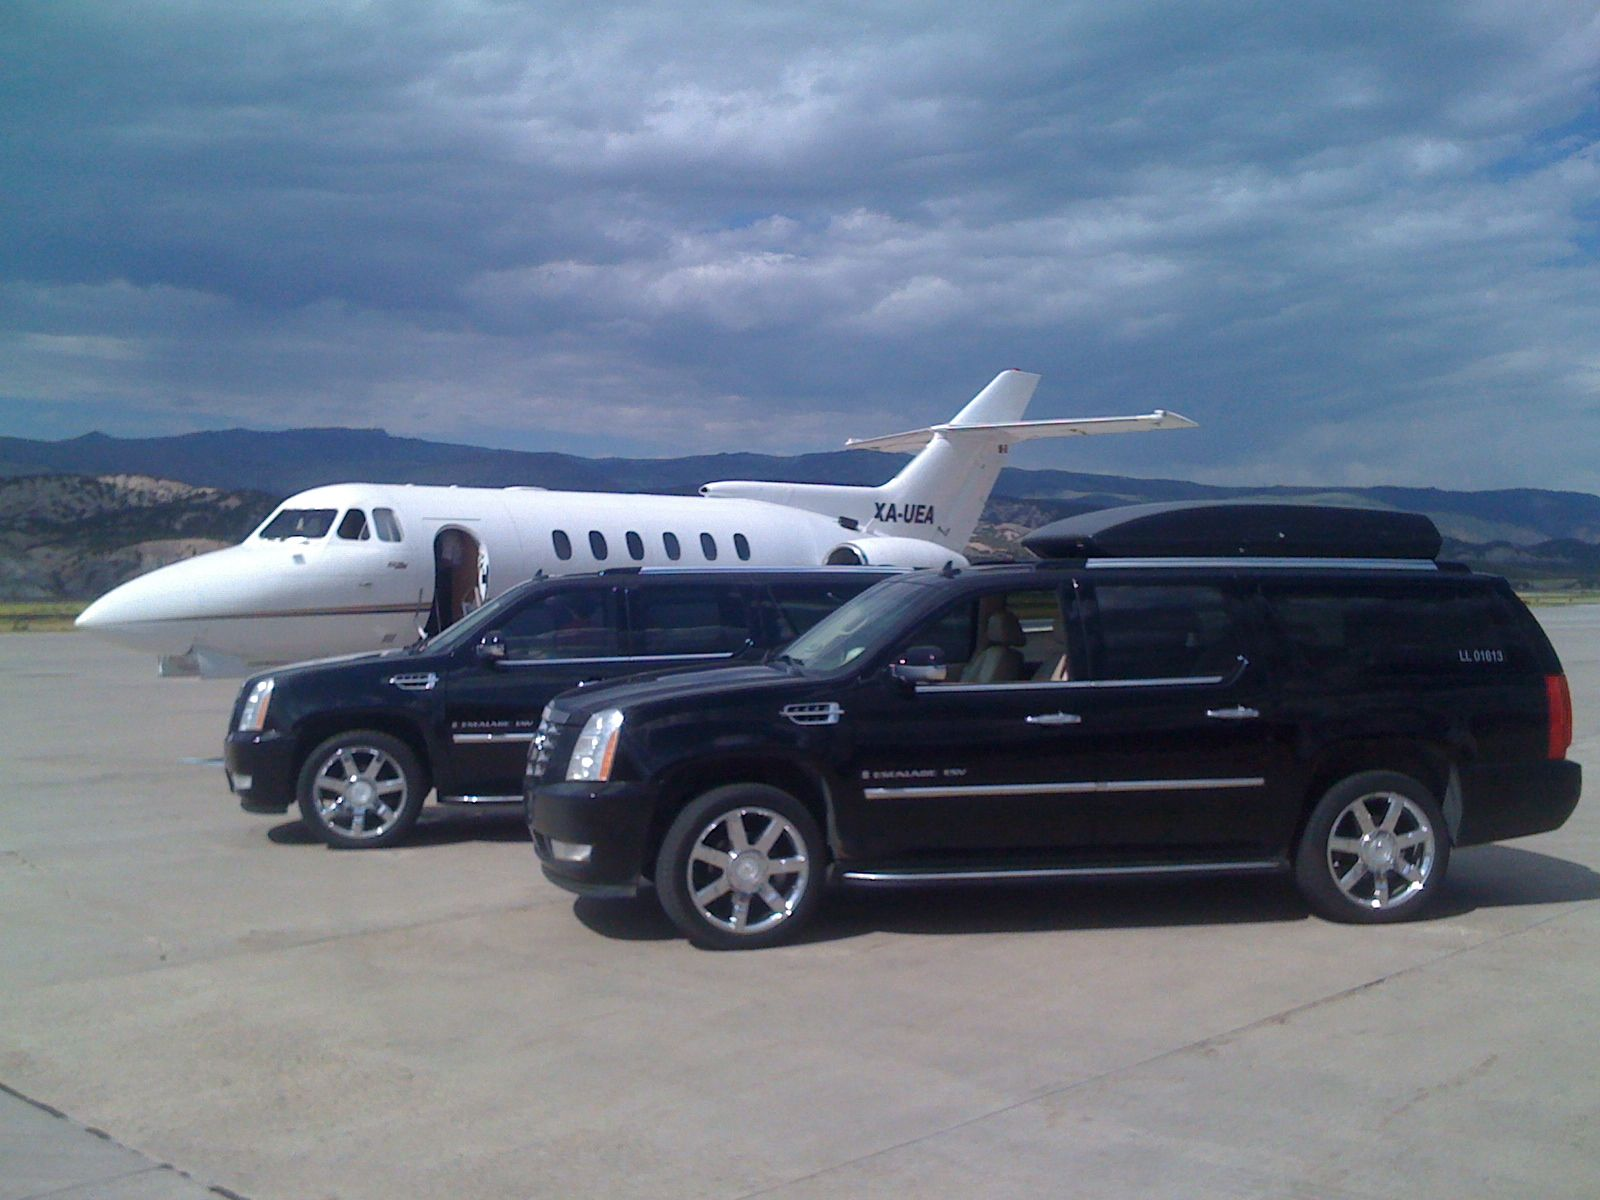 Pin On Charlotte Limousine Services